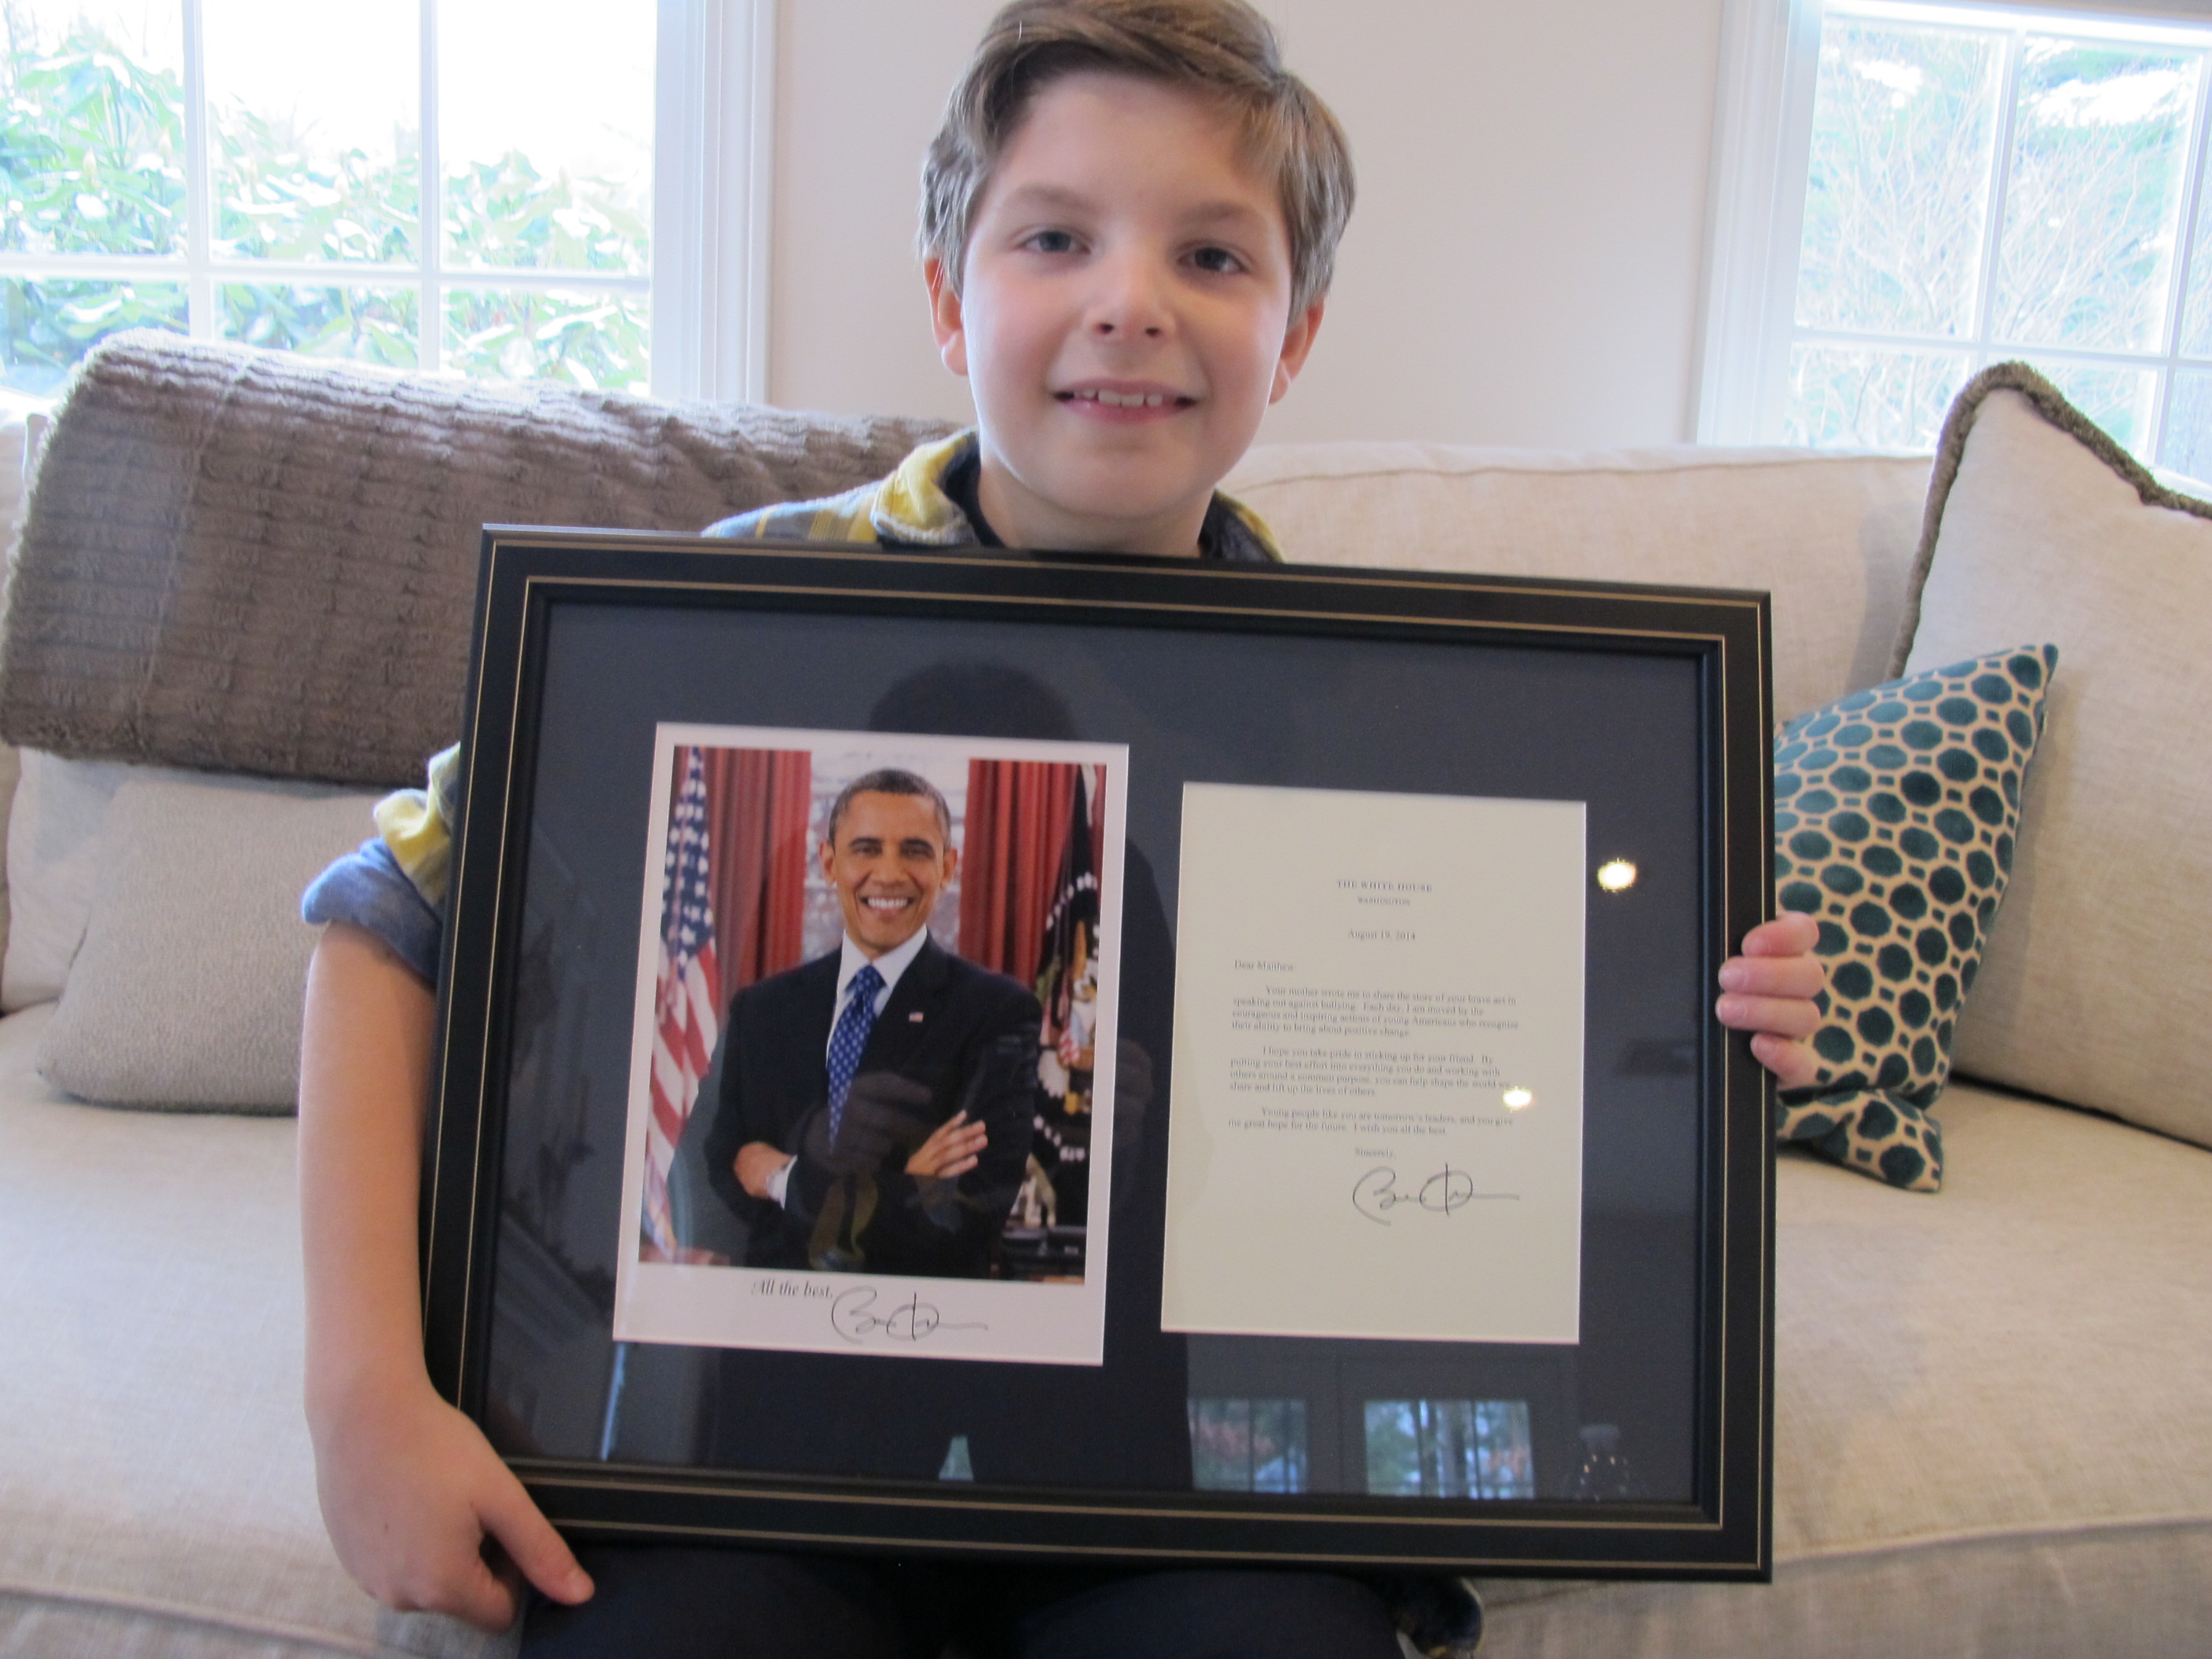 President Obama Commends Student for Stopping Bullying